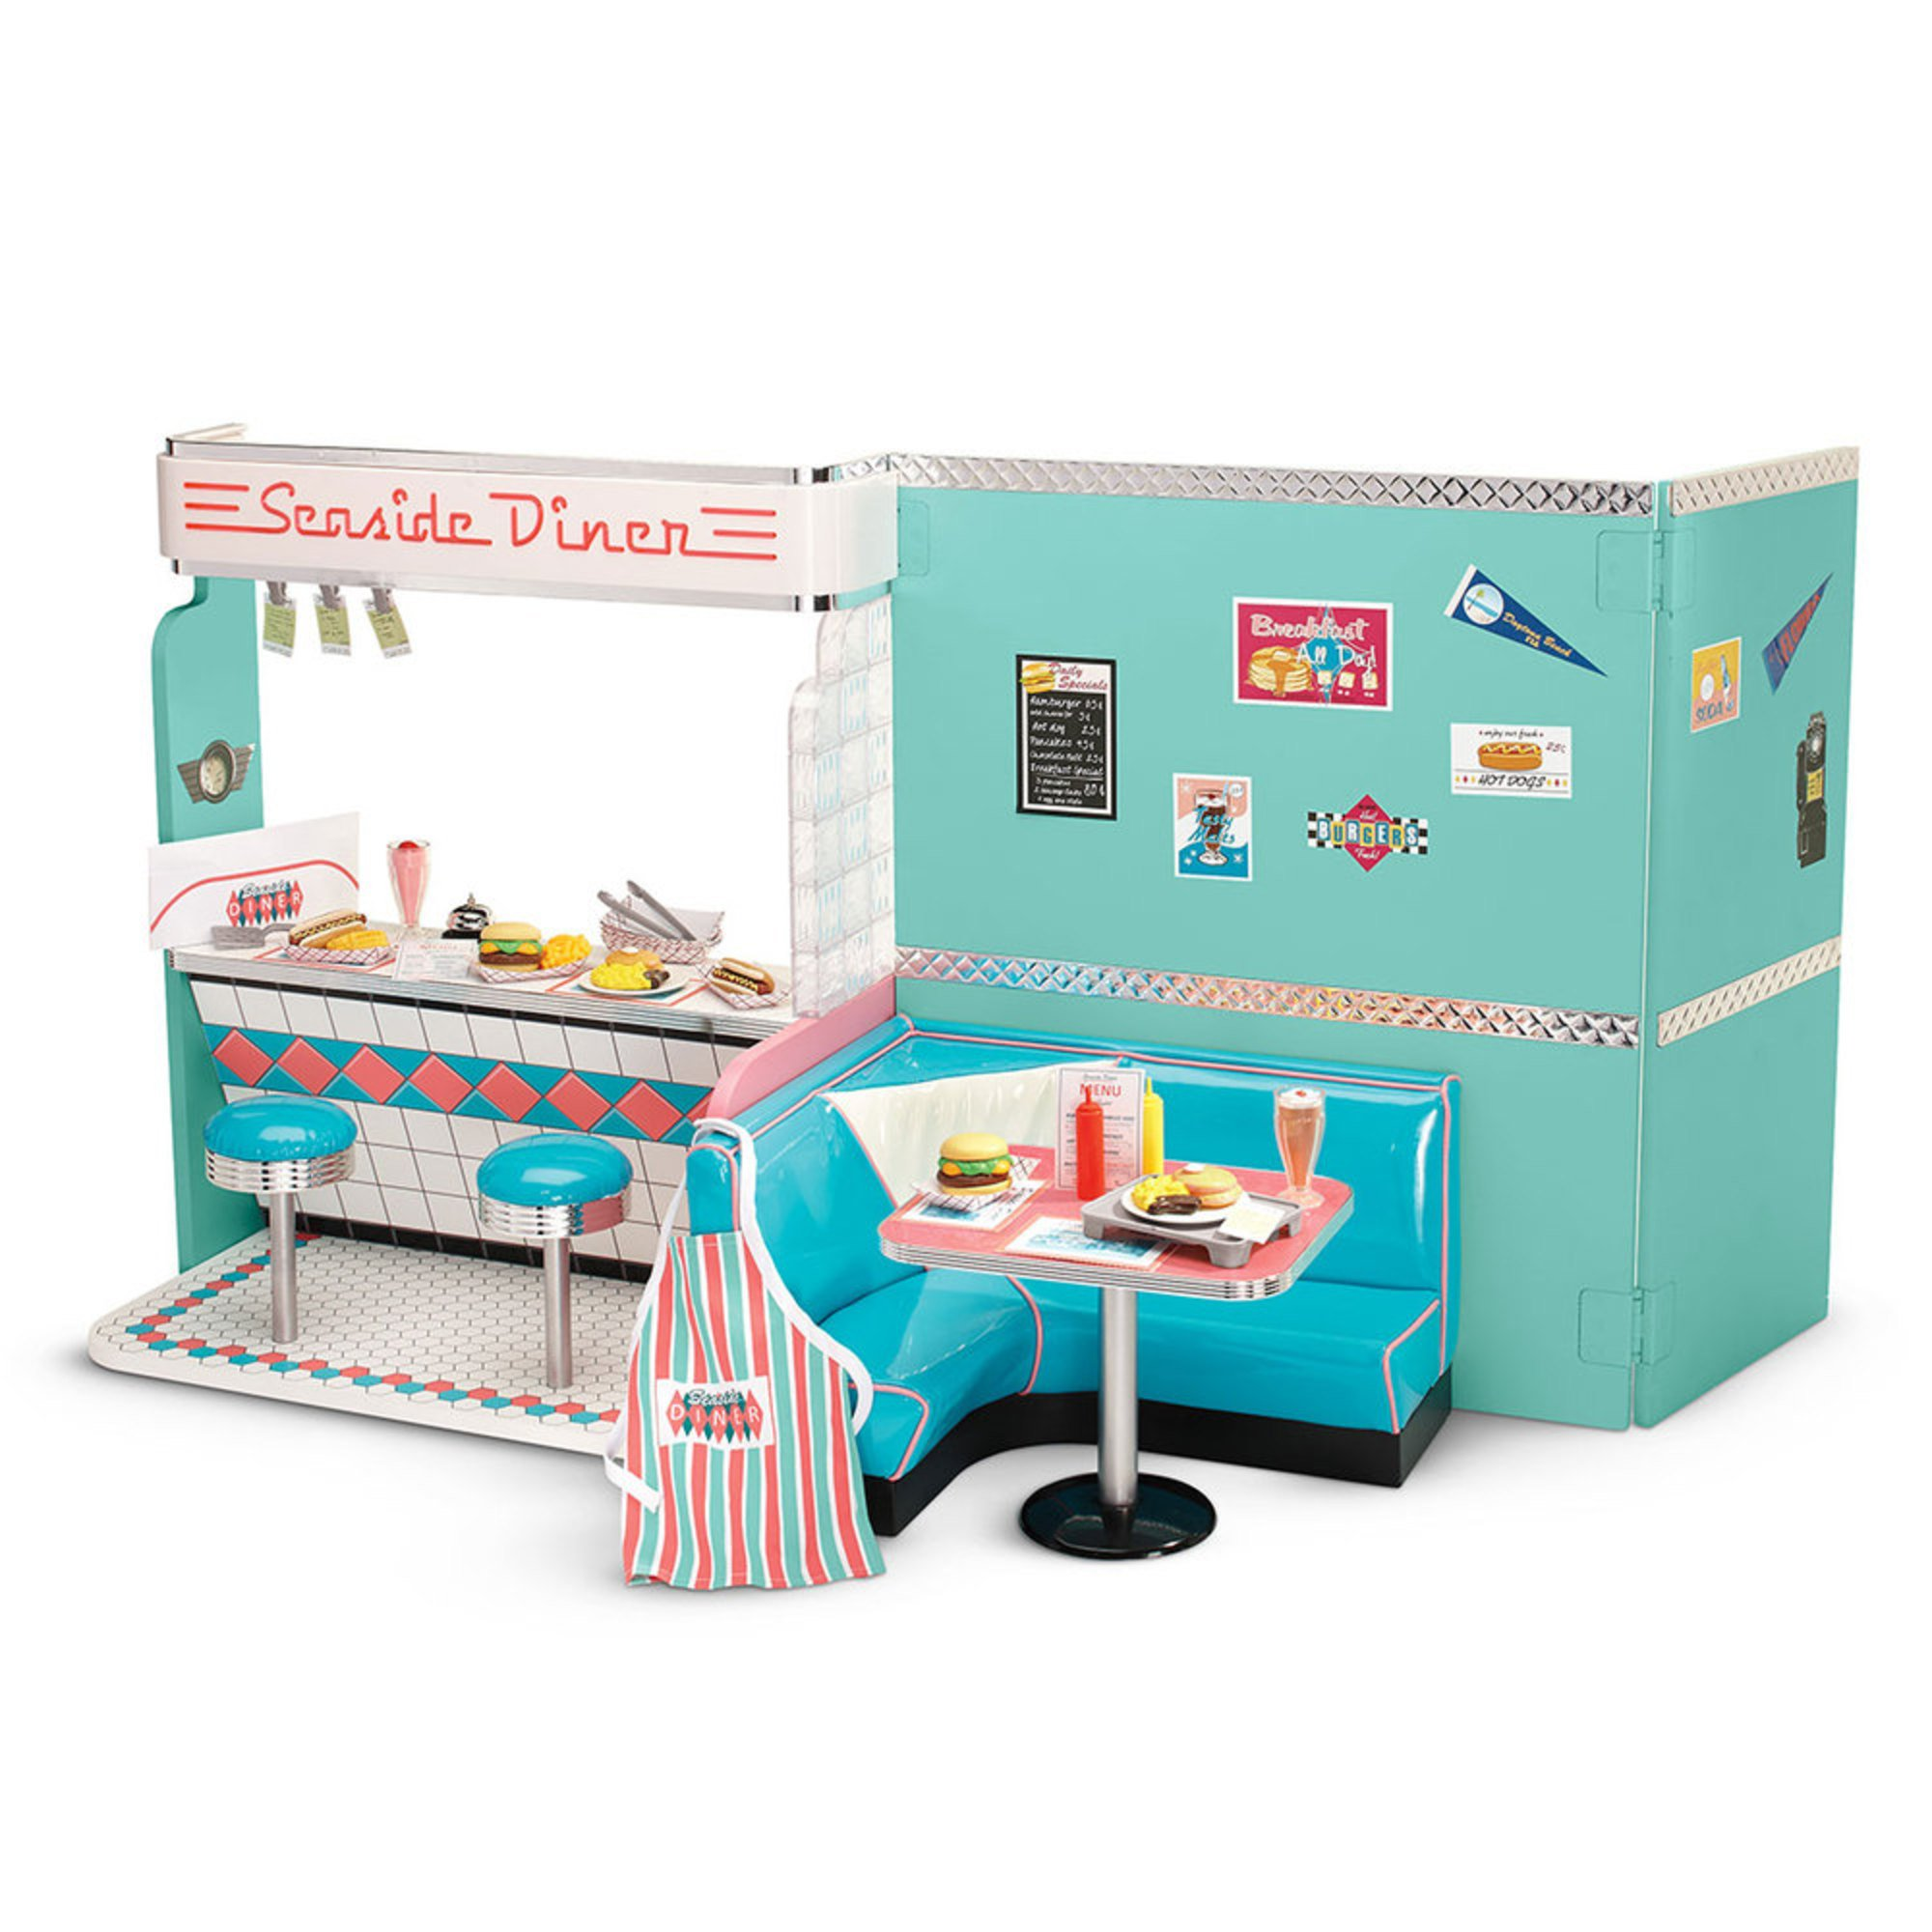 American Girl Maryellen 39 S Diner Set Furniture Vehicles Dollhouses Baby Kids Toys